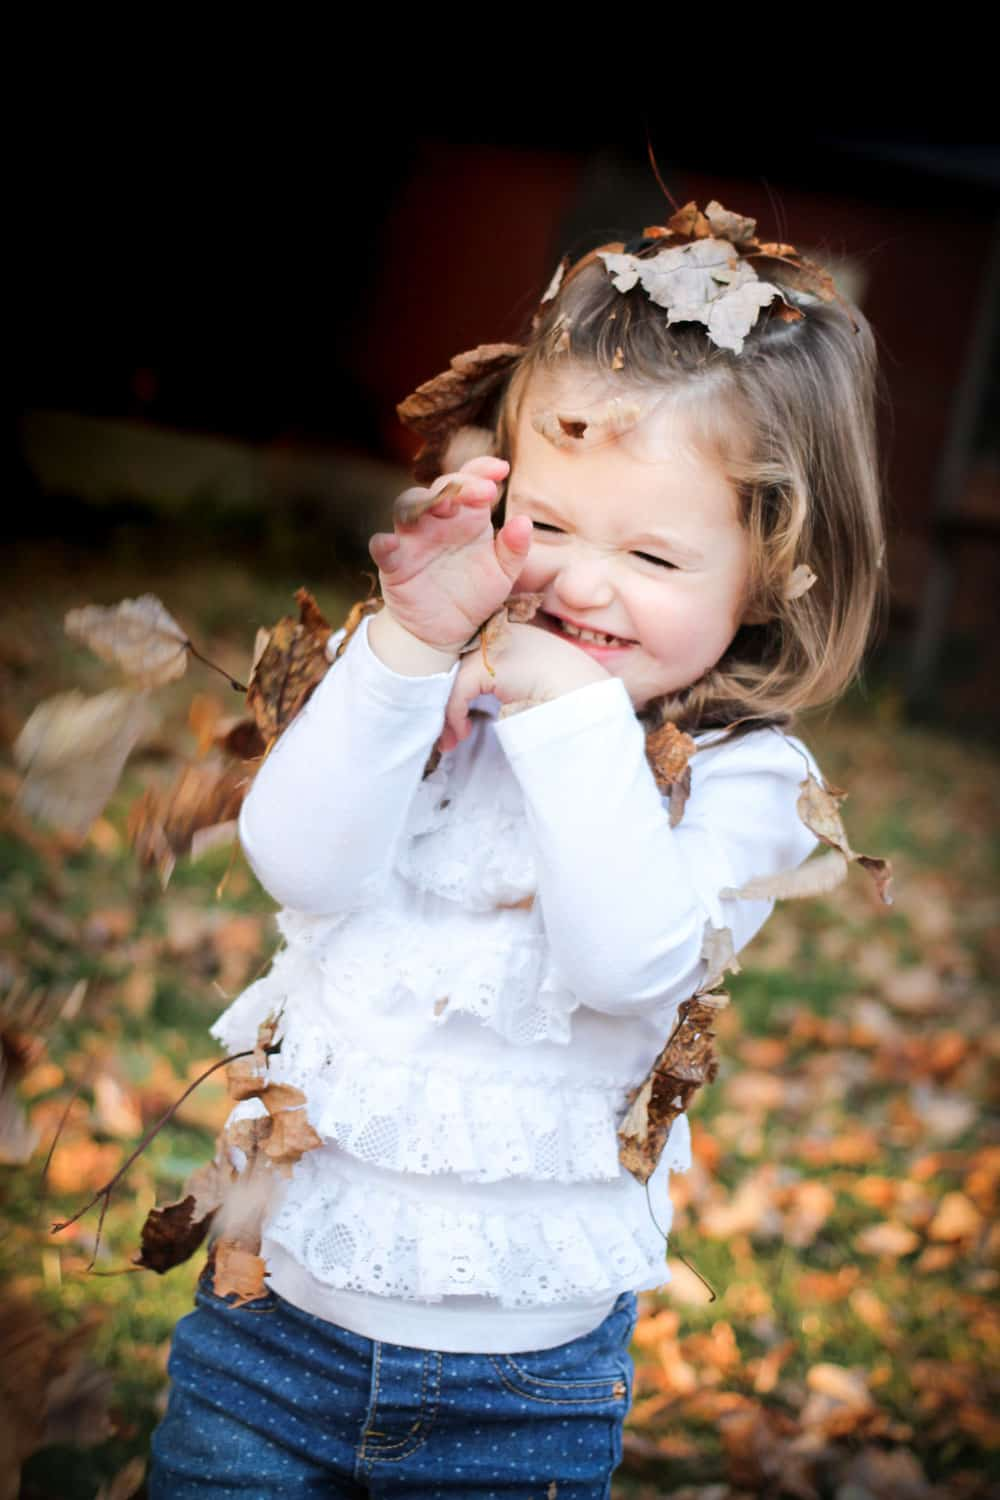 Top 5 Quick Tips to Improve Your Child Photography